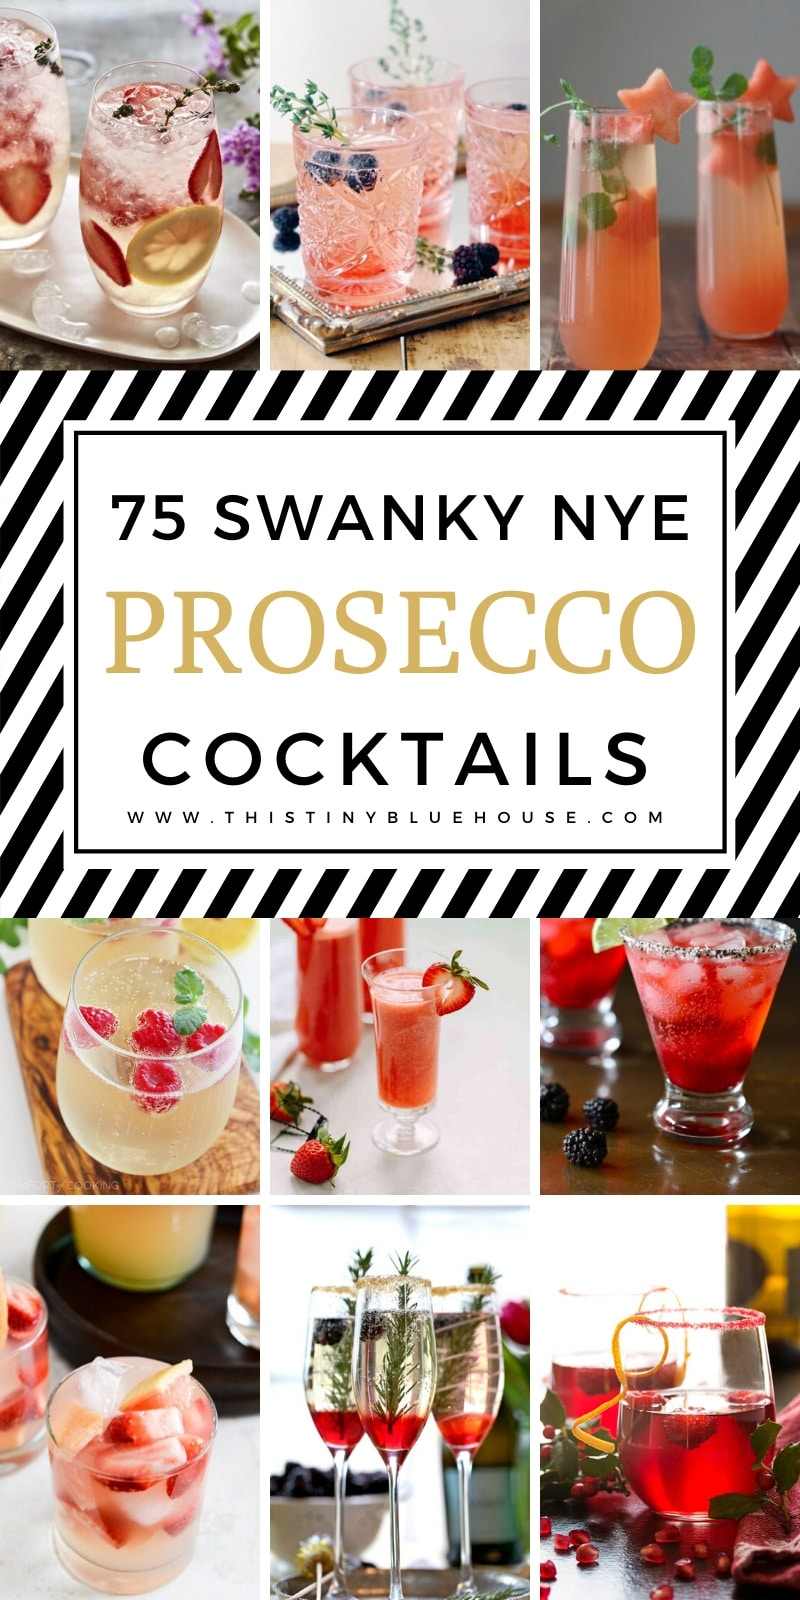 Countdown the New Year with one of these delicious and Best Easy Prosecco Cocktails perfect for any New Year's Eve Party. #NYEParty #NYECocktails #NYEDrinks #ProseccoCocktails #EasyProseccoCocktails #NYEPartyCocktailIdeas